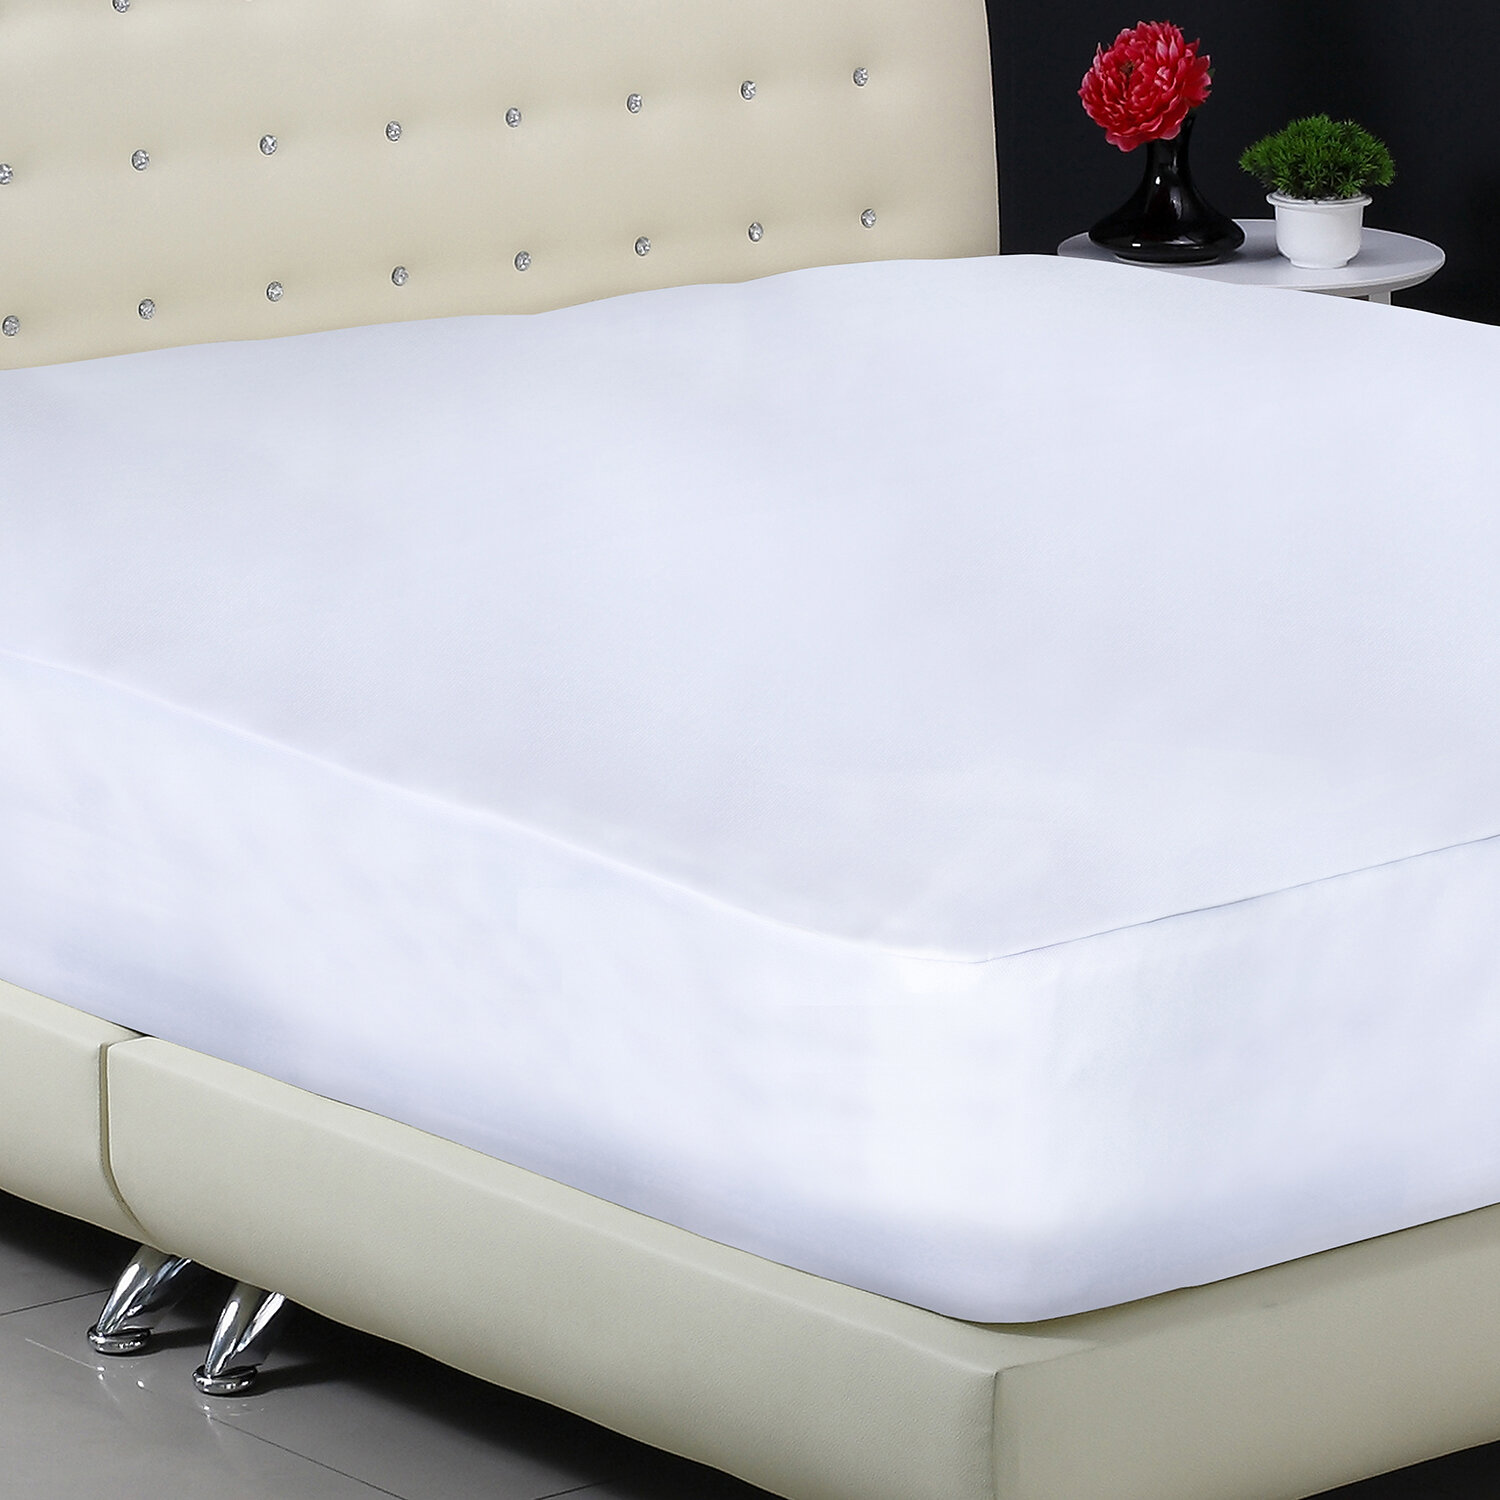 Protect A Bed Basic Fitted Hypoallergenic Waterproof Mattress Protector Reviews Wayfair